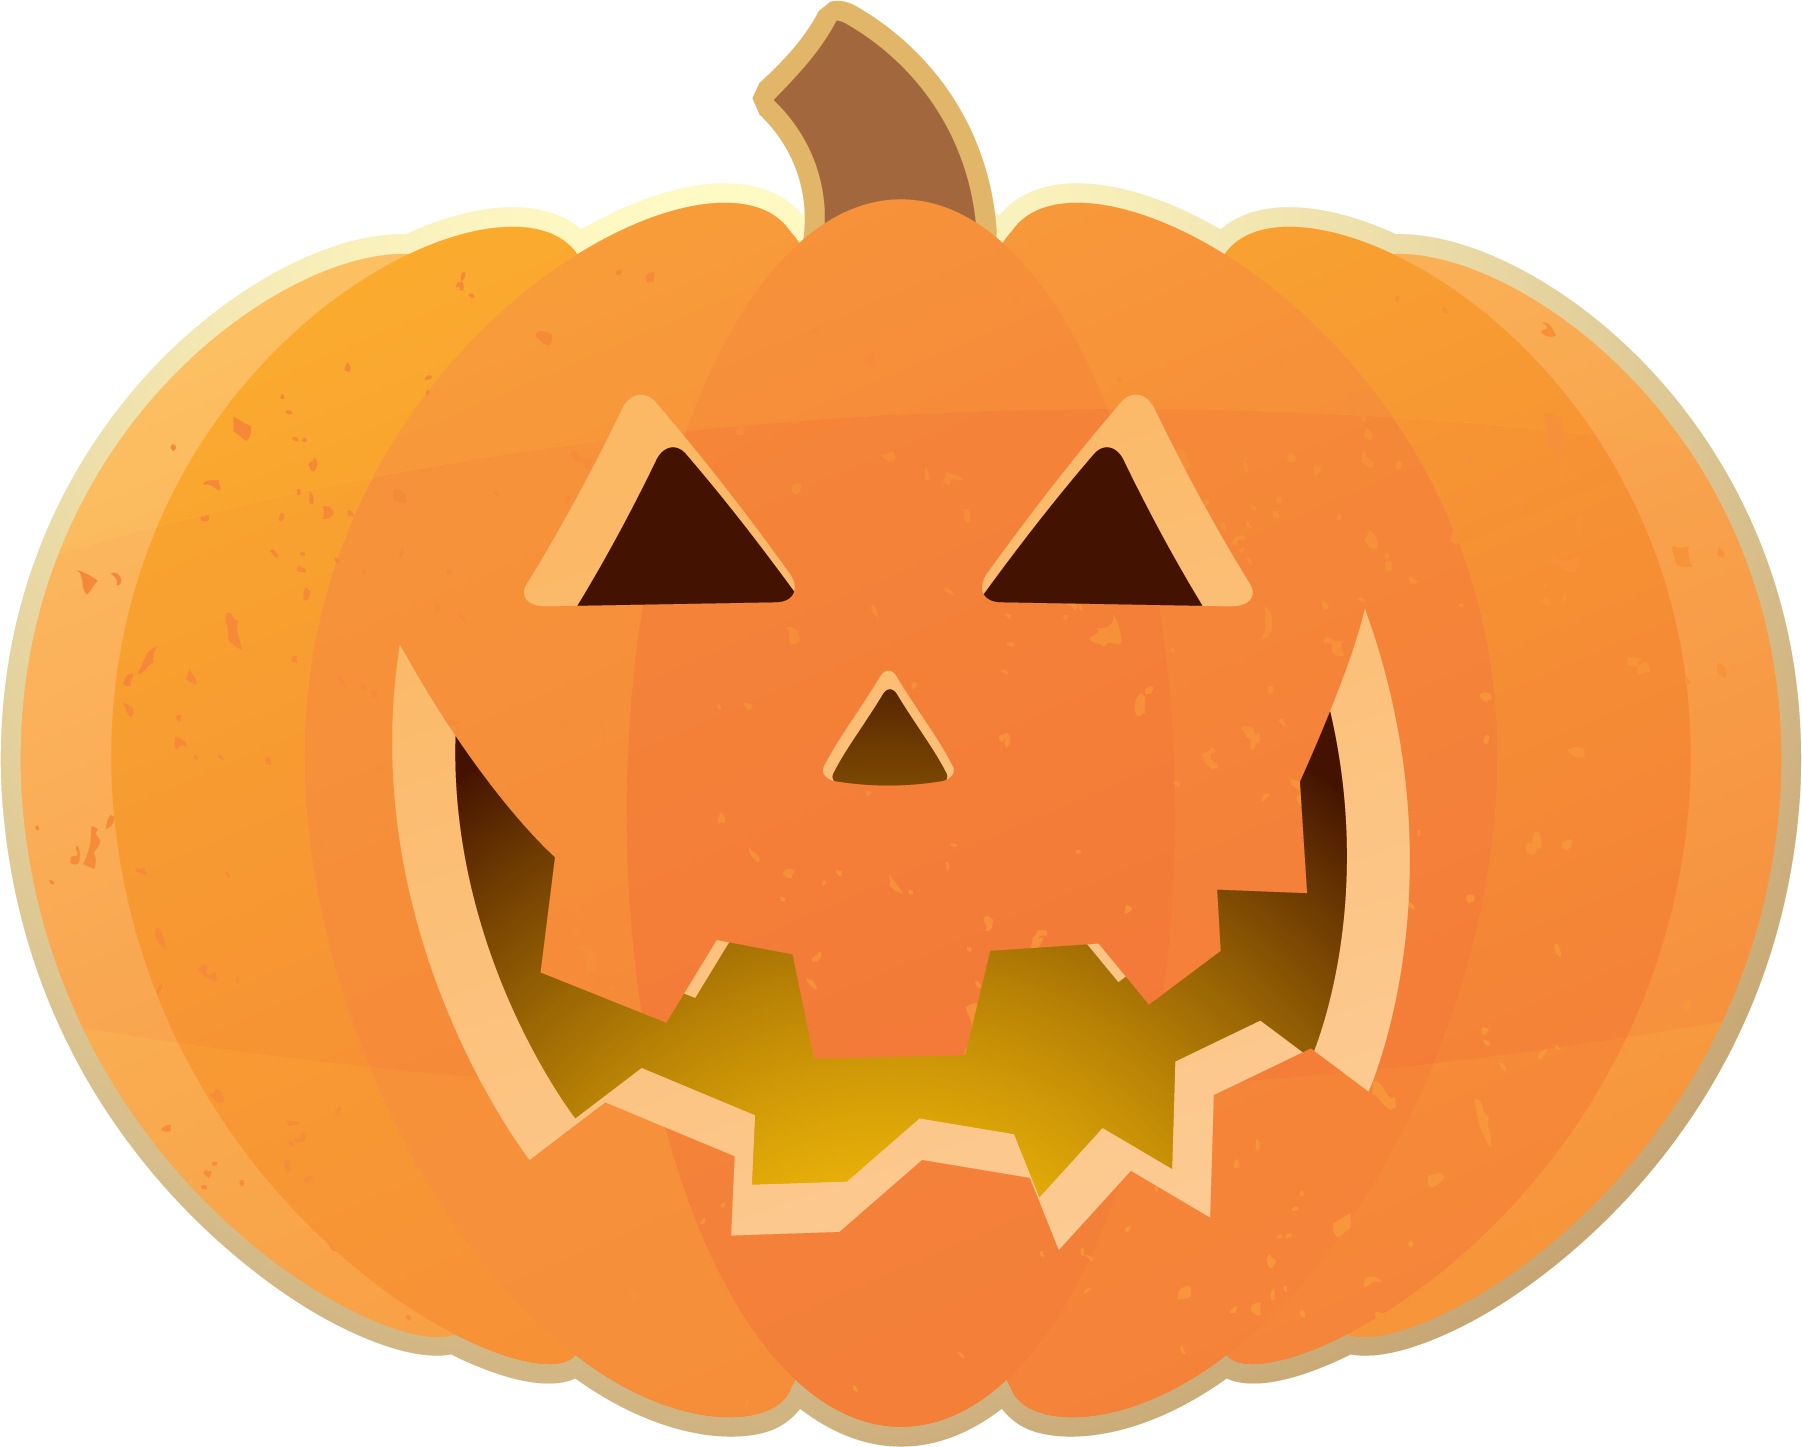 Preschool pumpkin clipart clip art transparent Free Pumpkin Clipart at GetDrawings.com | Free for personal use Free ... clip art transparent